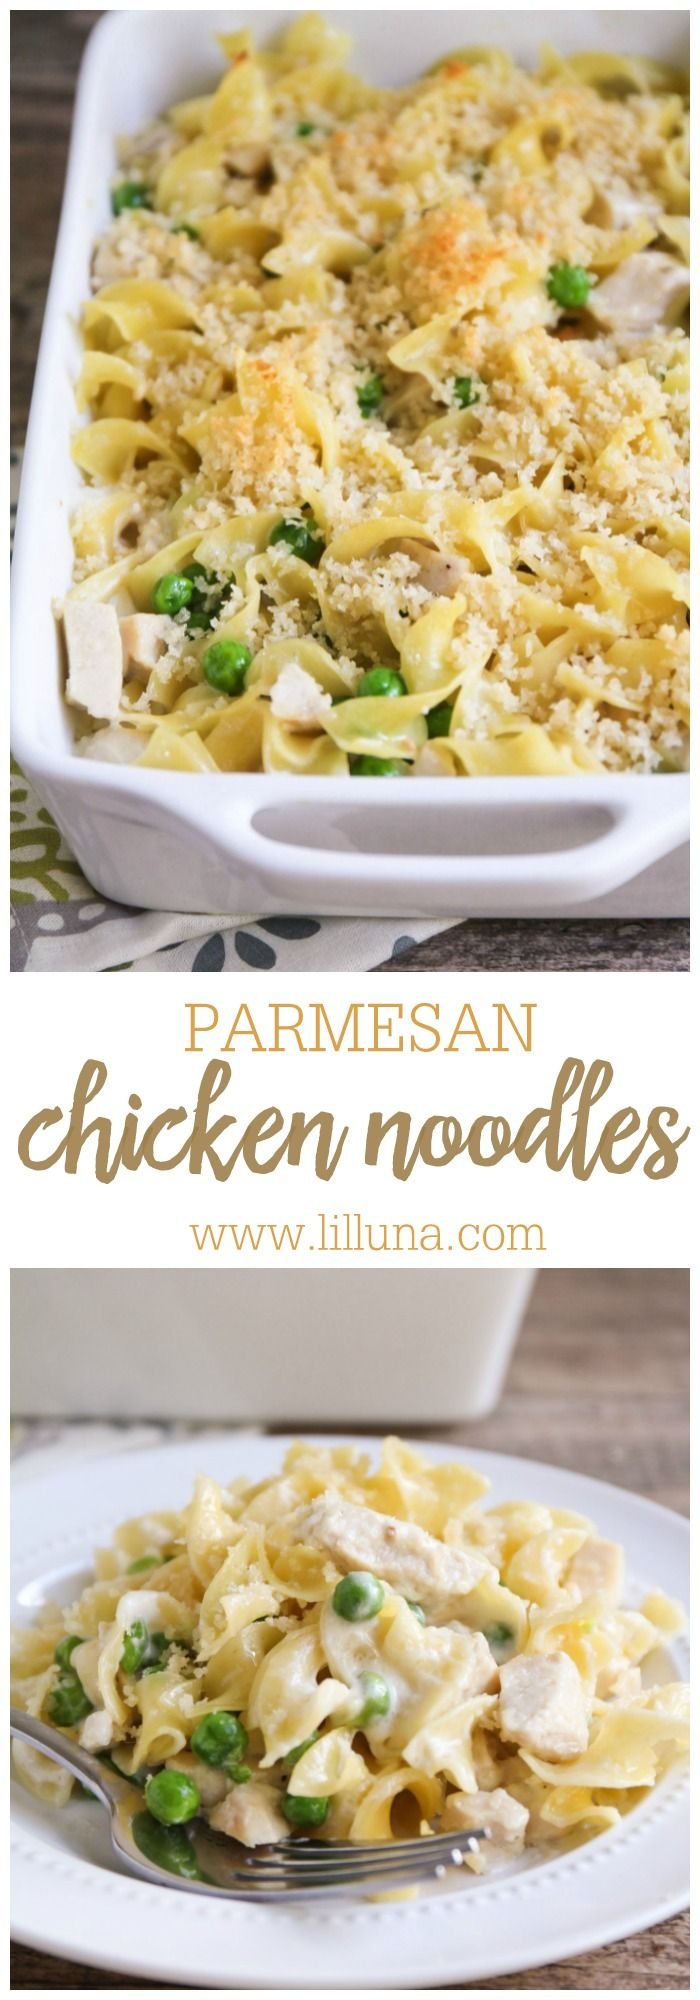 Garlic Parmesan Chicken and Noodles recipe { lilluna.com } So delicious and recipe includes egg noodles, peas, chicken, panko, and